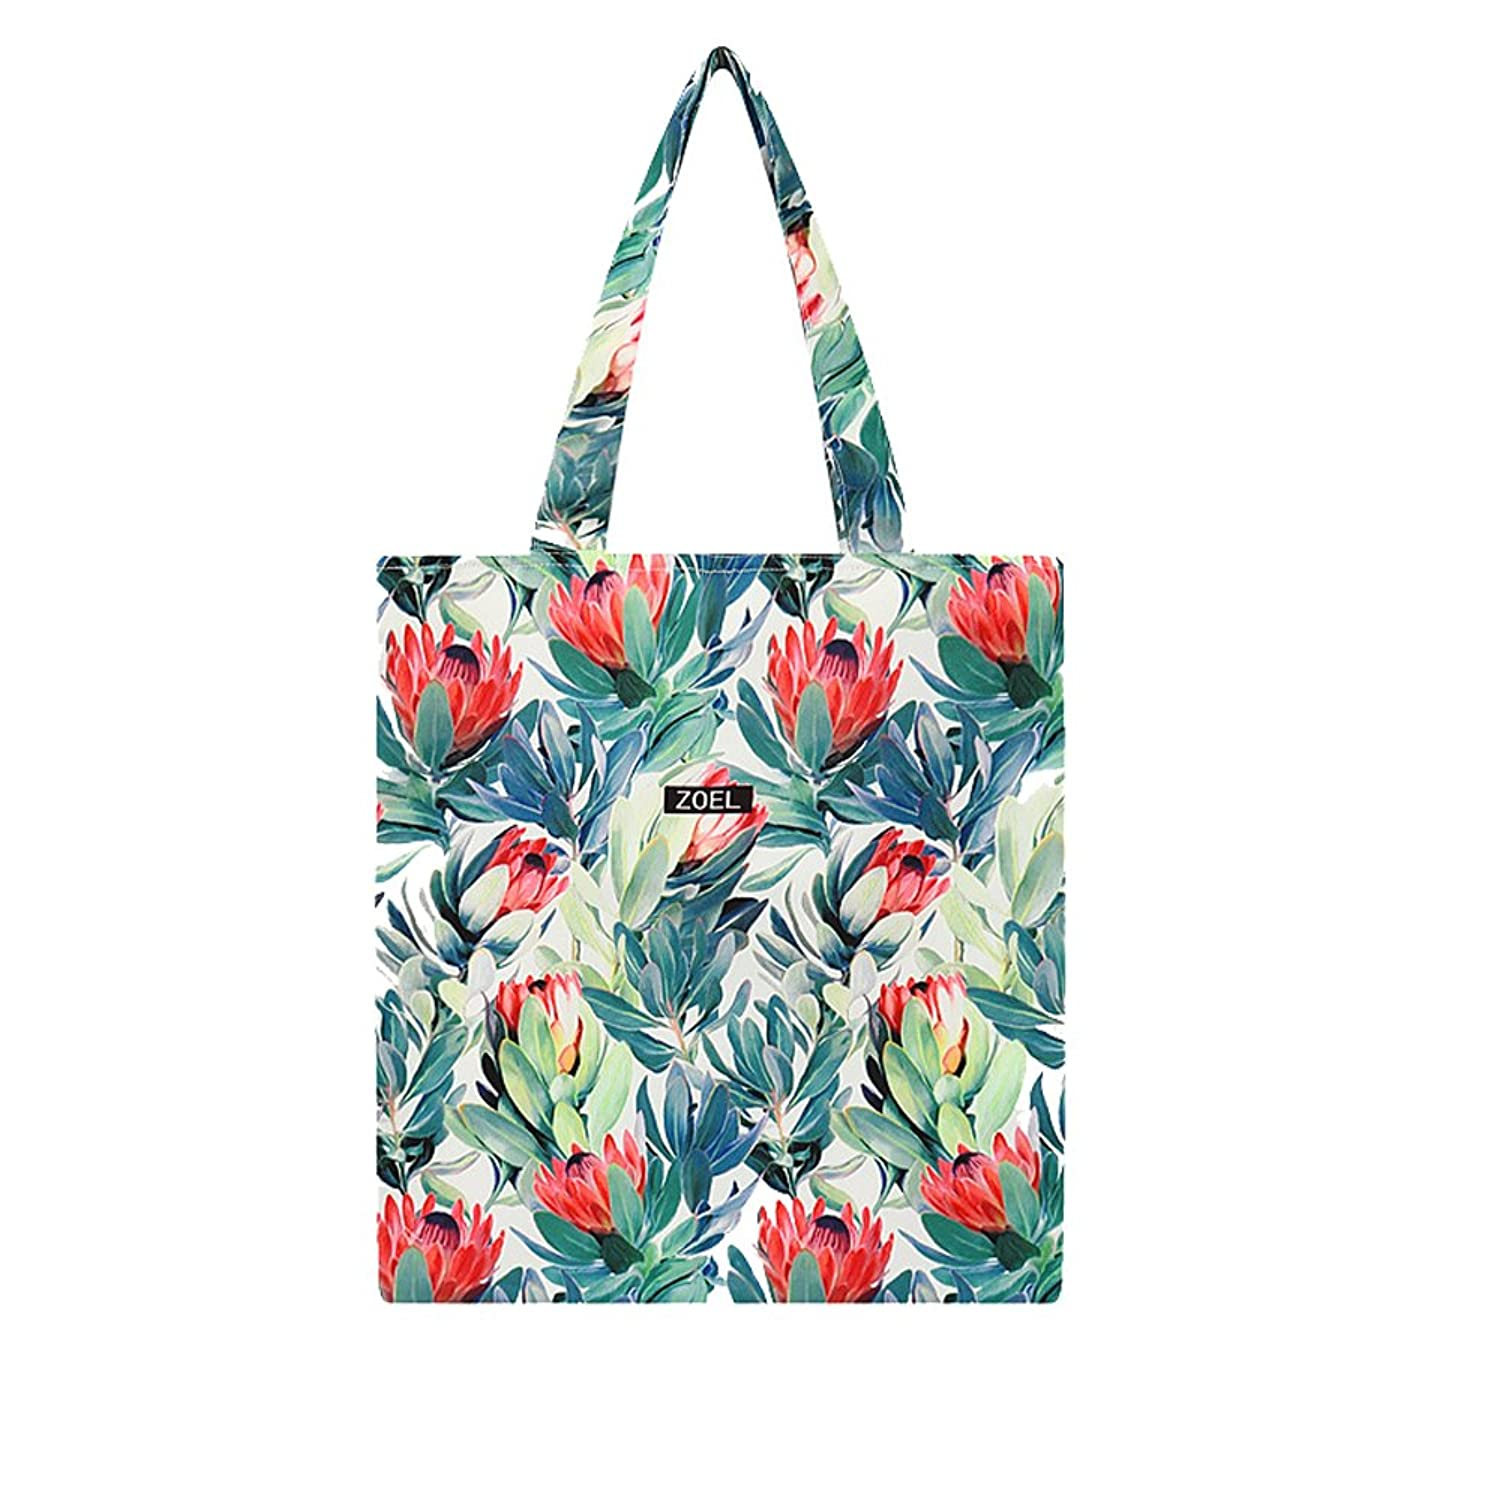 LucyGod Women Girl Polyester Canvas Shopping Handbag Flower-print Shoulder Tote Bags with Zipper Design